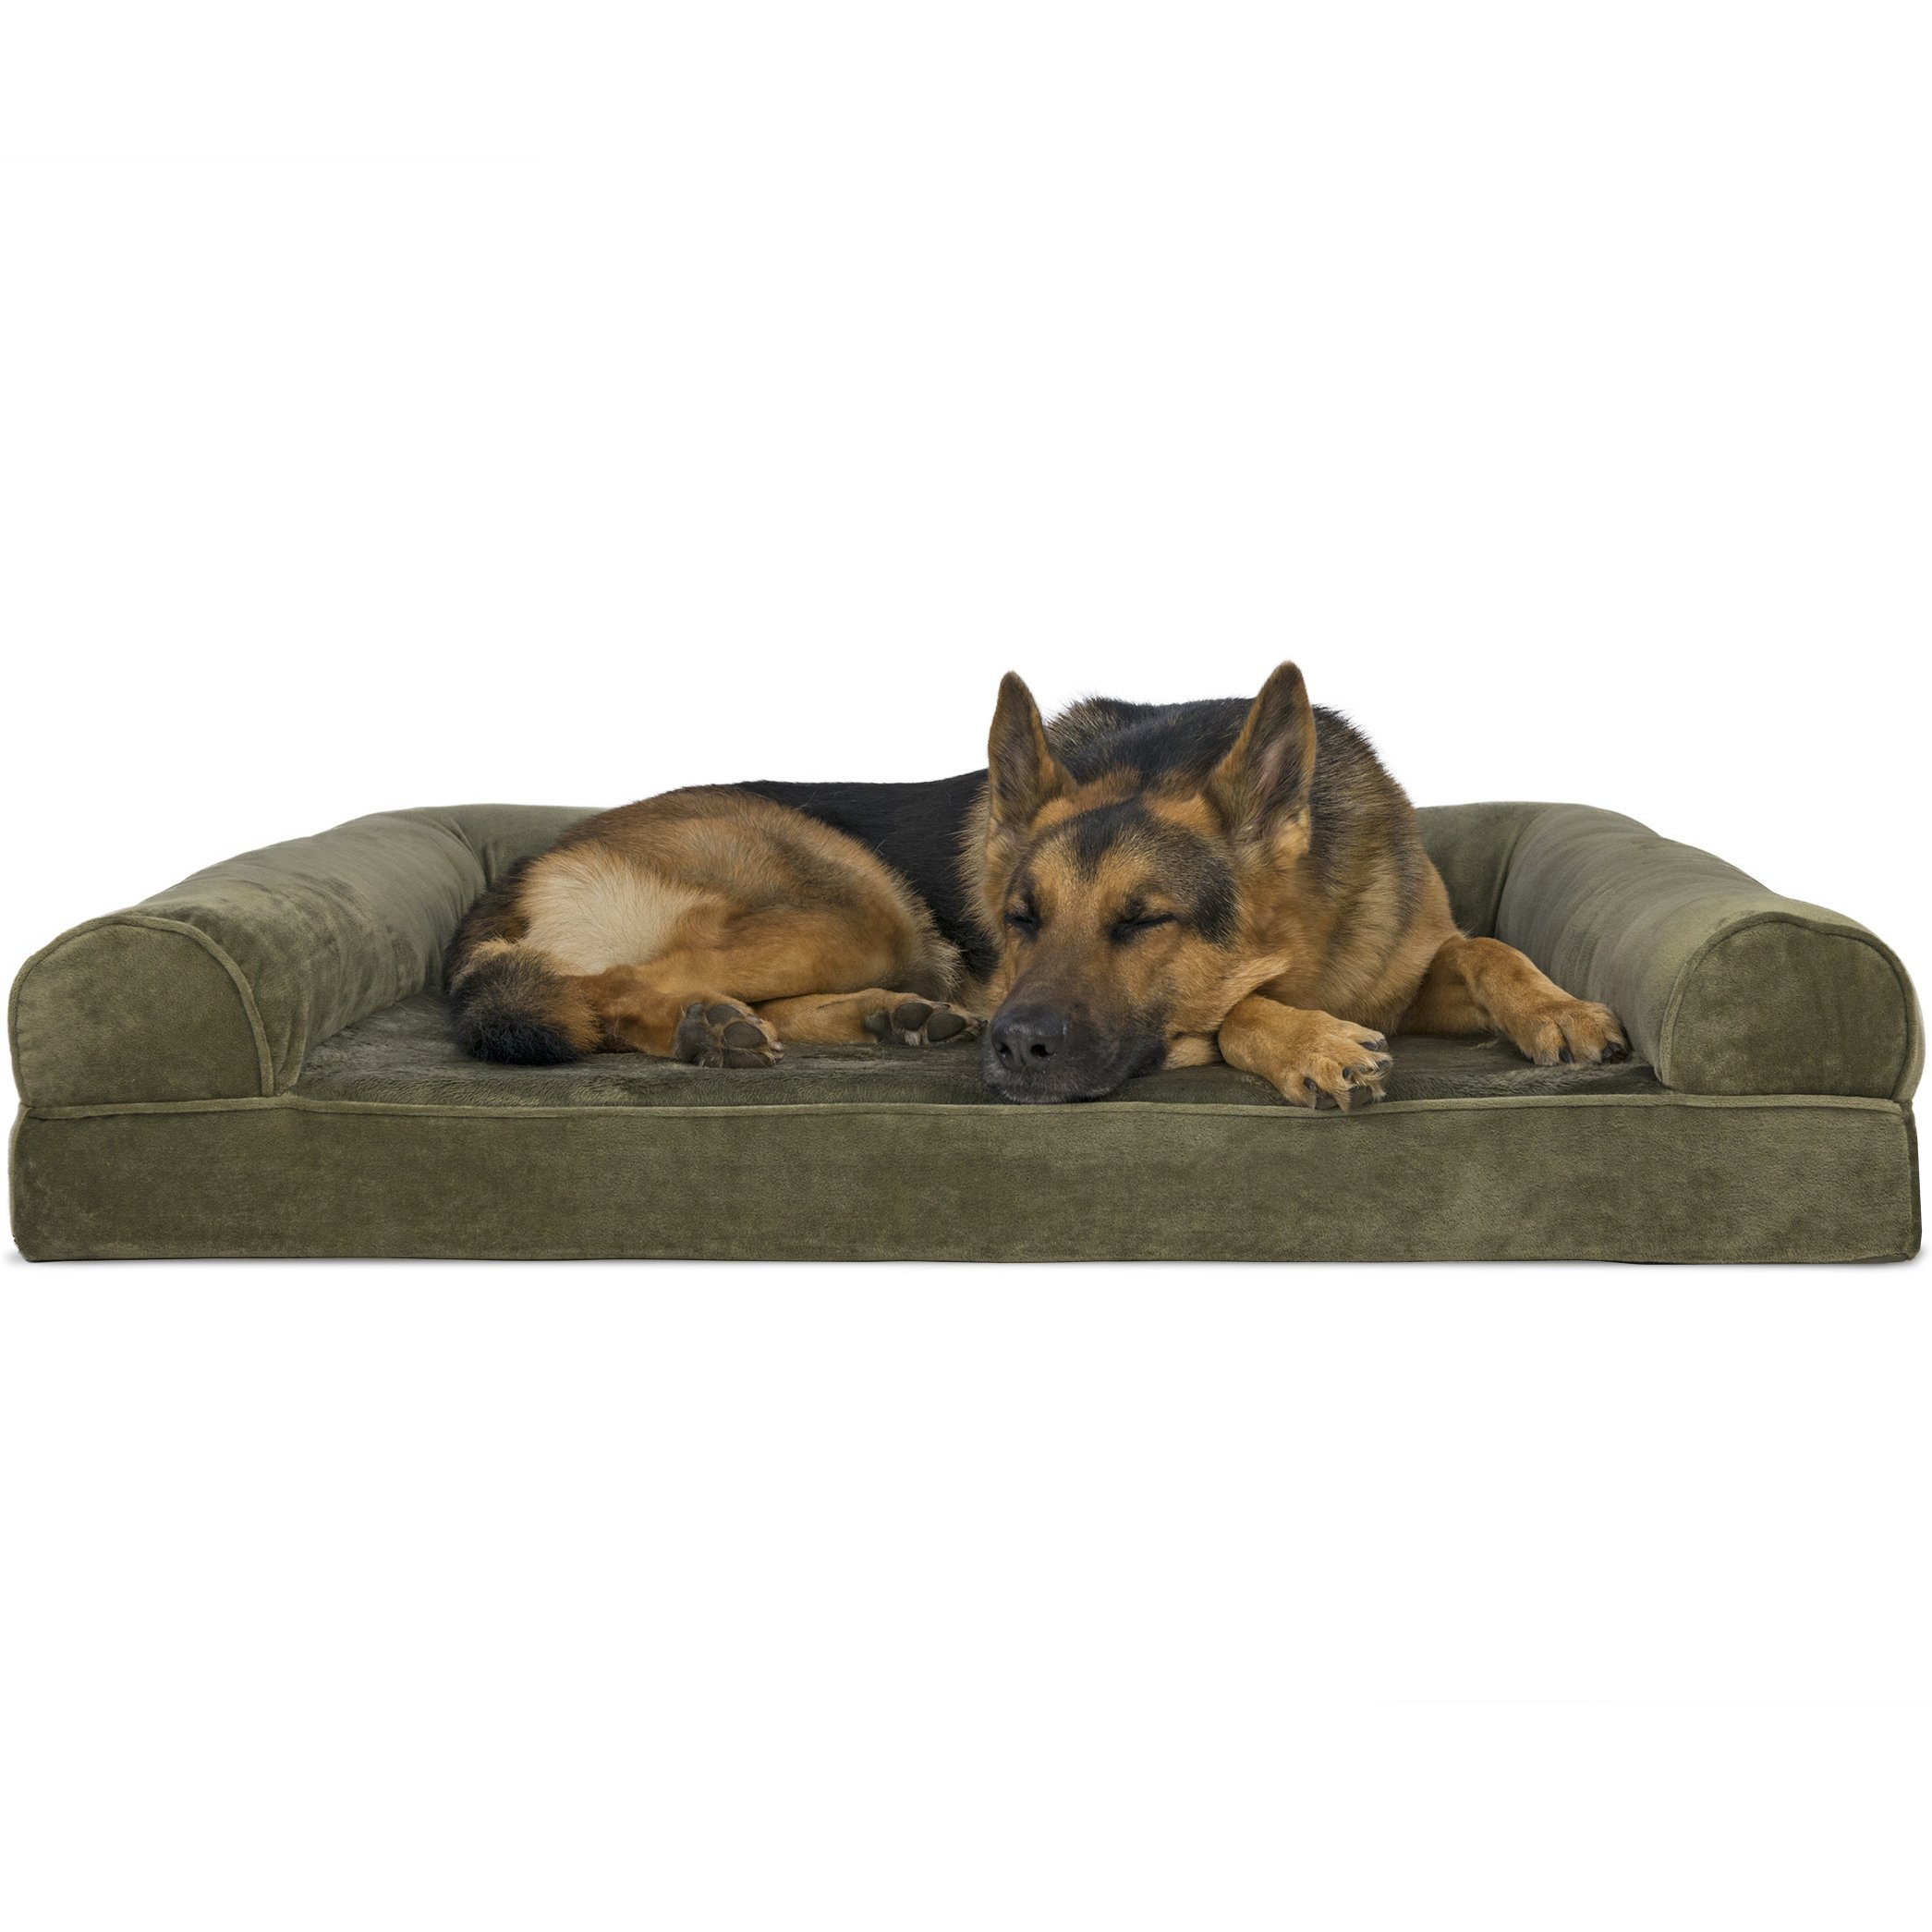 FurHaven Pet Dog Bed | Orthopedic Faux Fur & Velvet Sofa-Style Couch Pet Bed for Dogs & Cats, Dark Sage, Jumbo